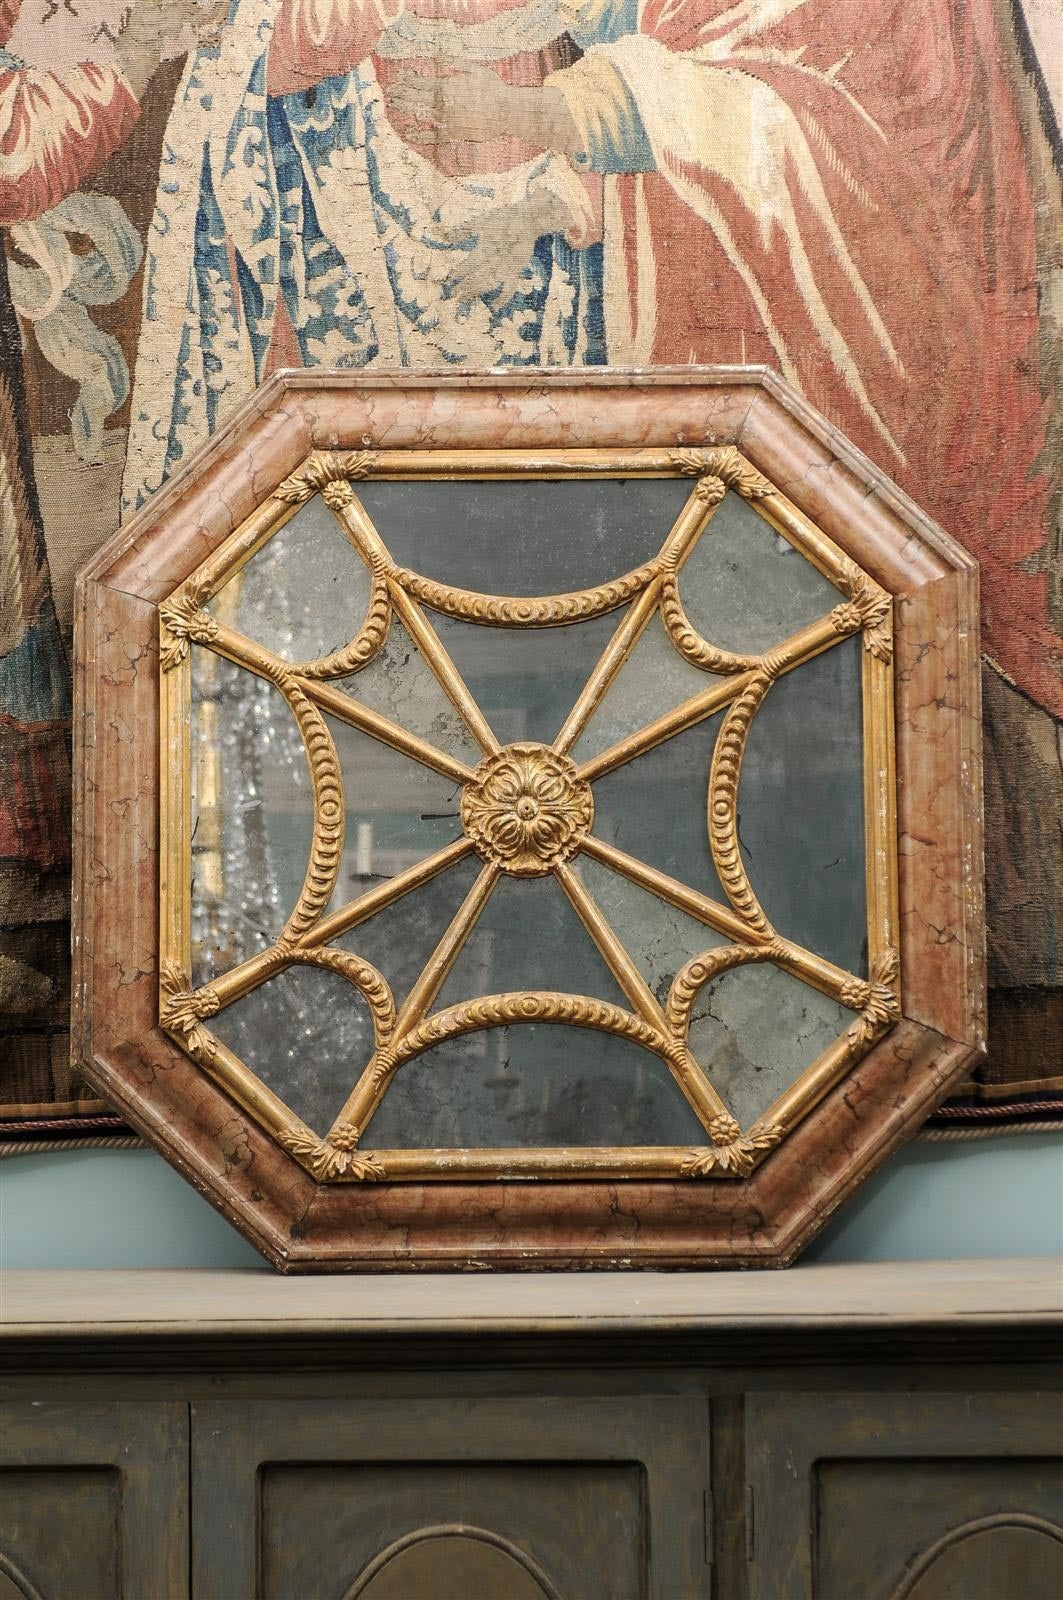 A 19th century exquisite Italian octagonal mirror with faux marble frame and original glass.